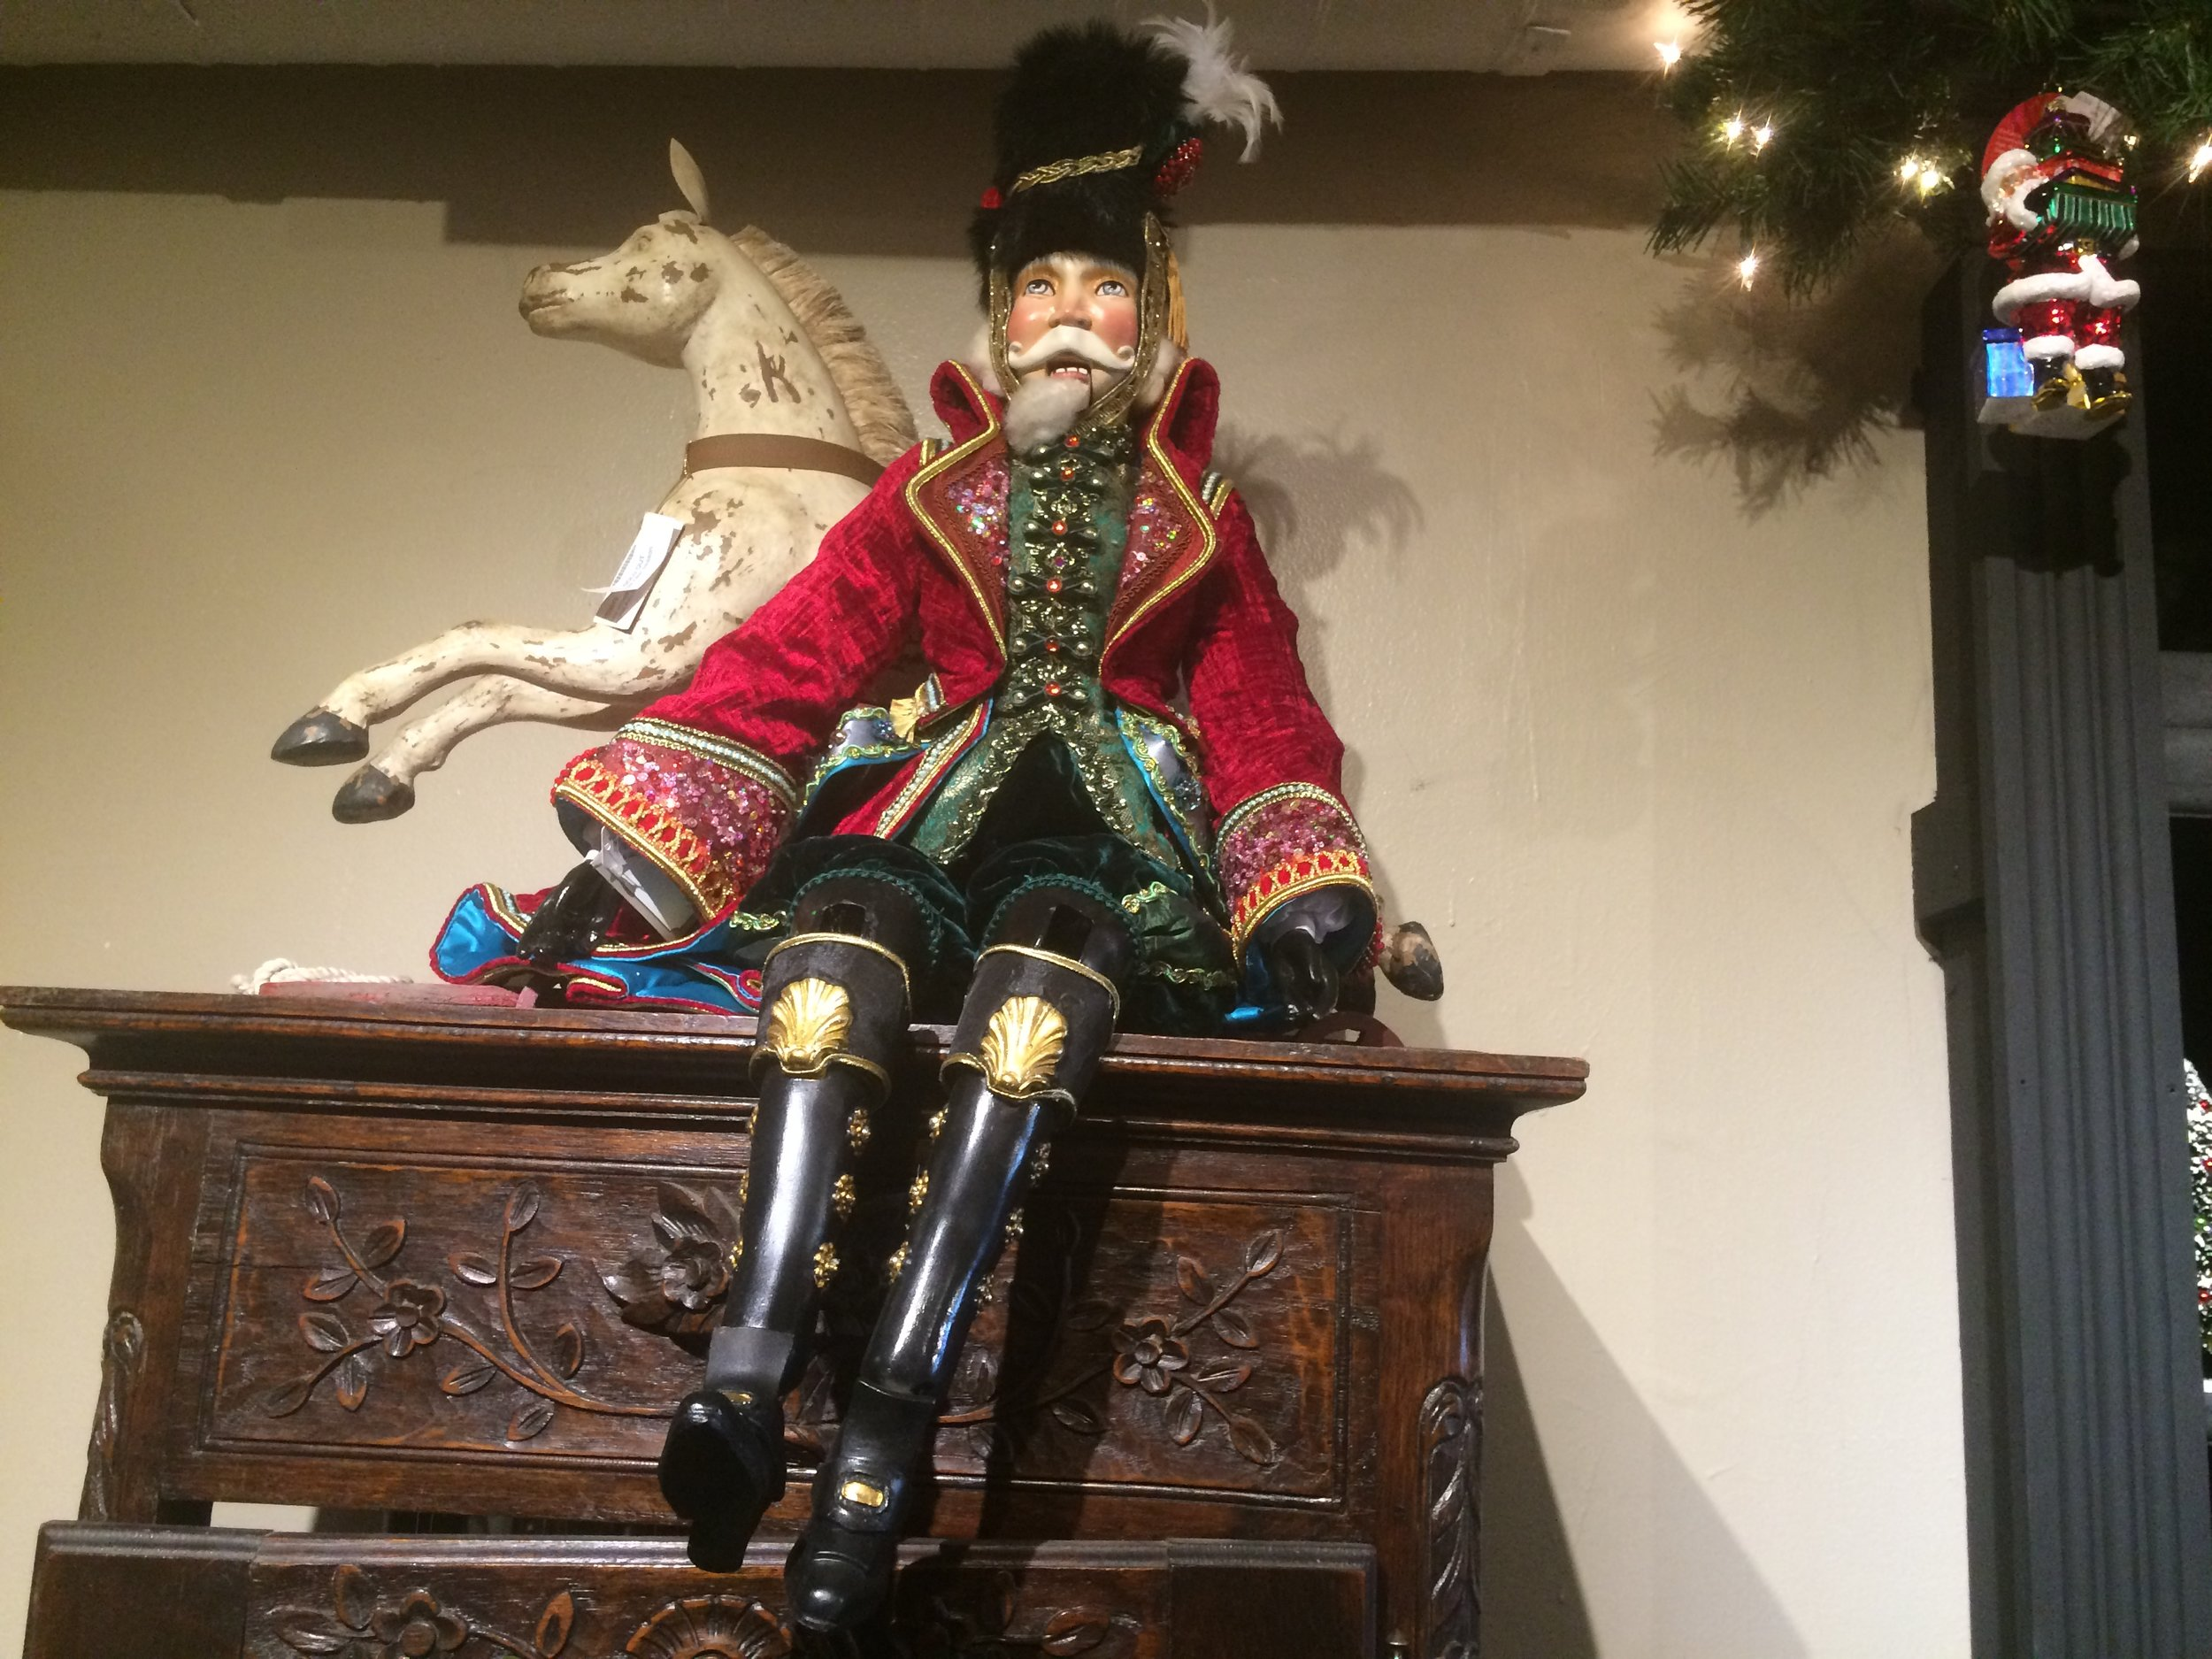 The nutcracker that watched over the store.